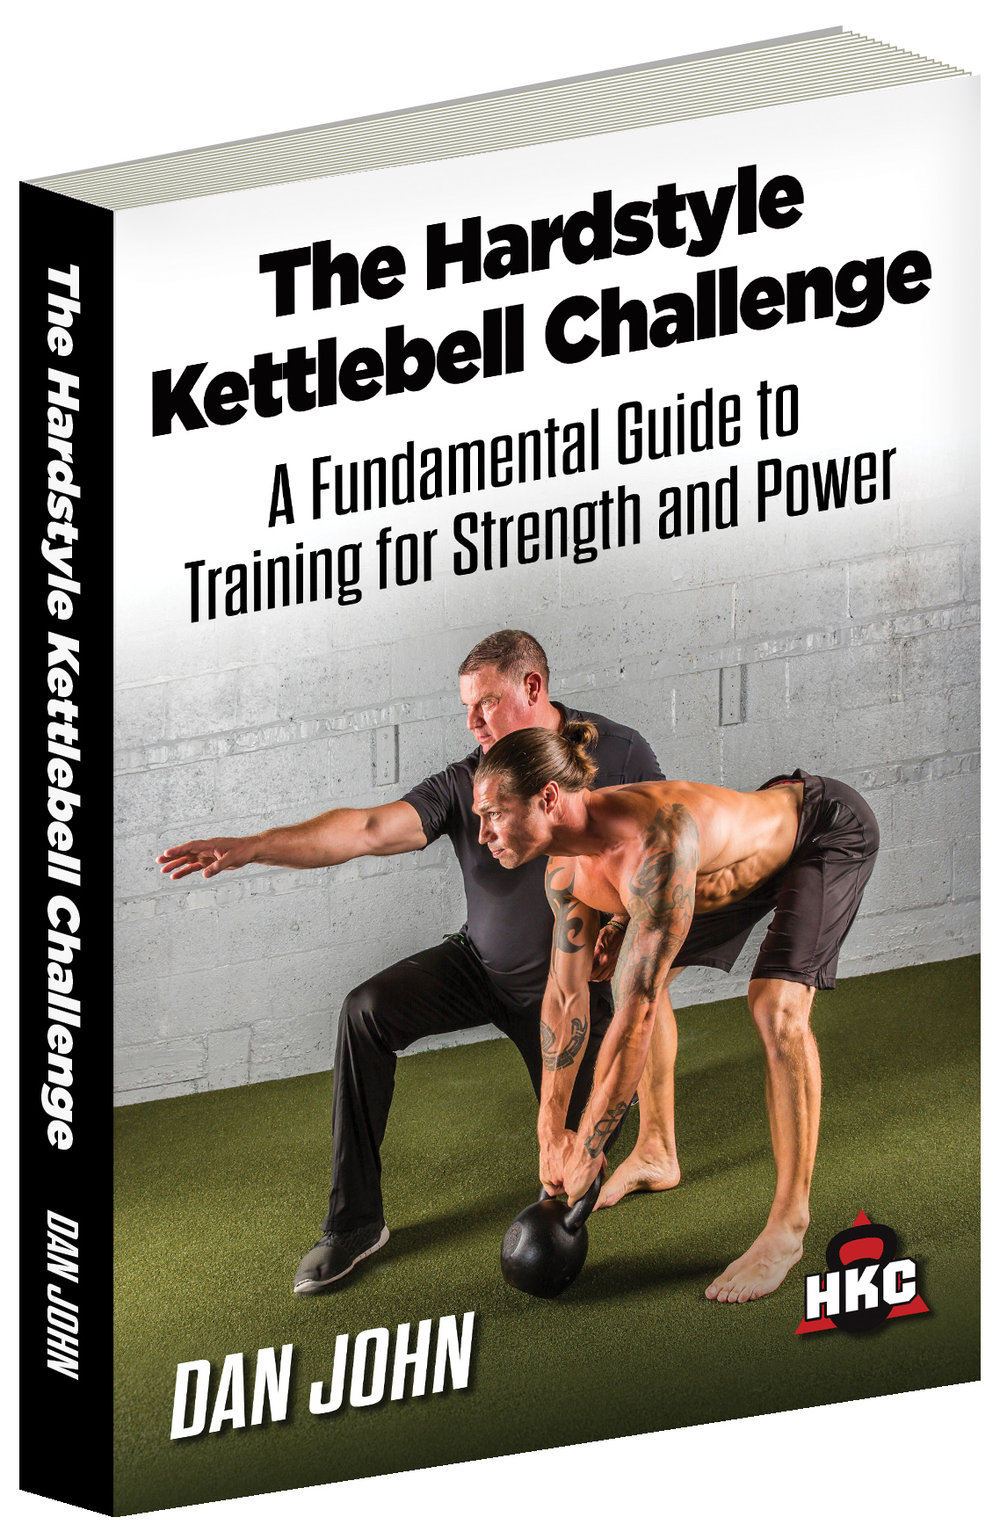 Kettlebell Fitness Book Published Dragon Door Publications Mary